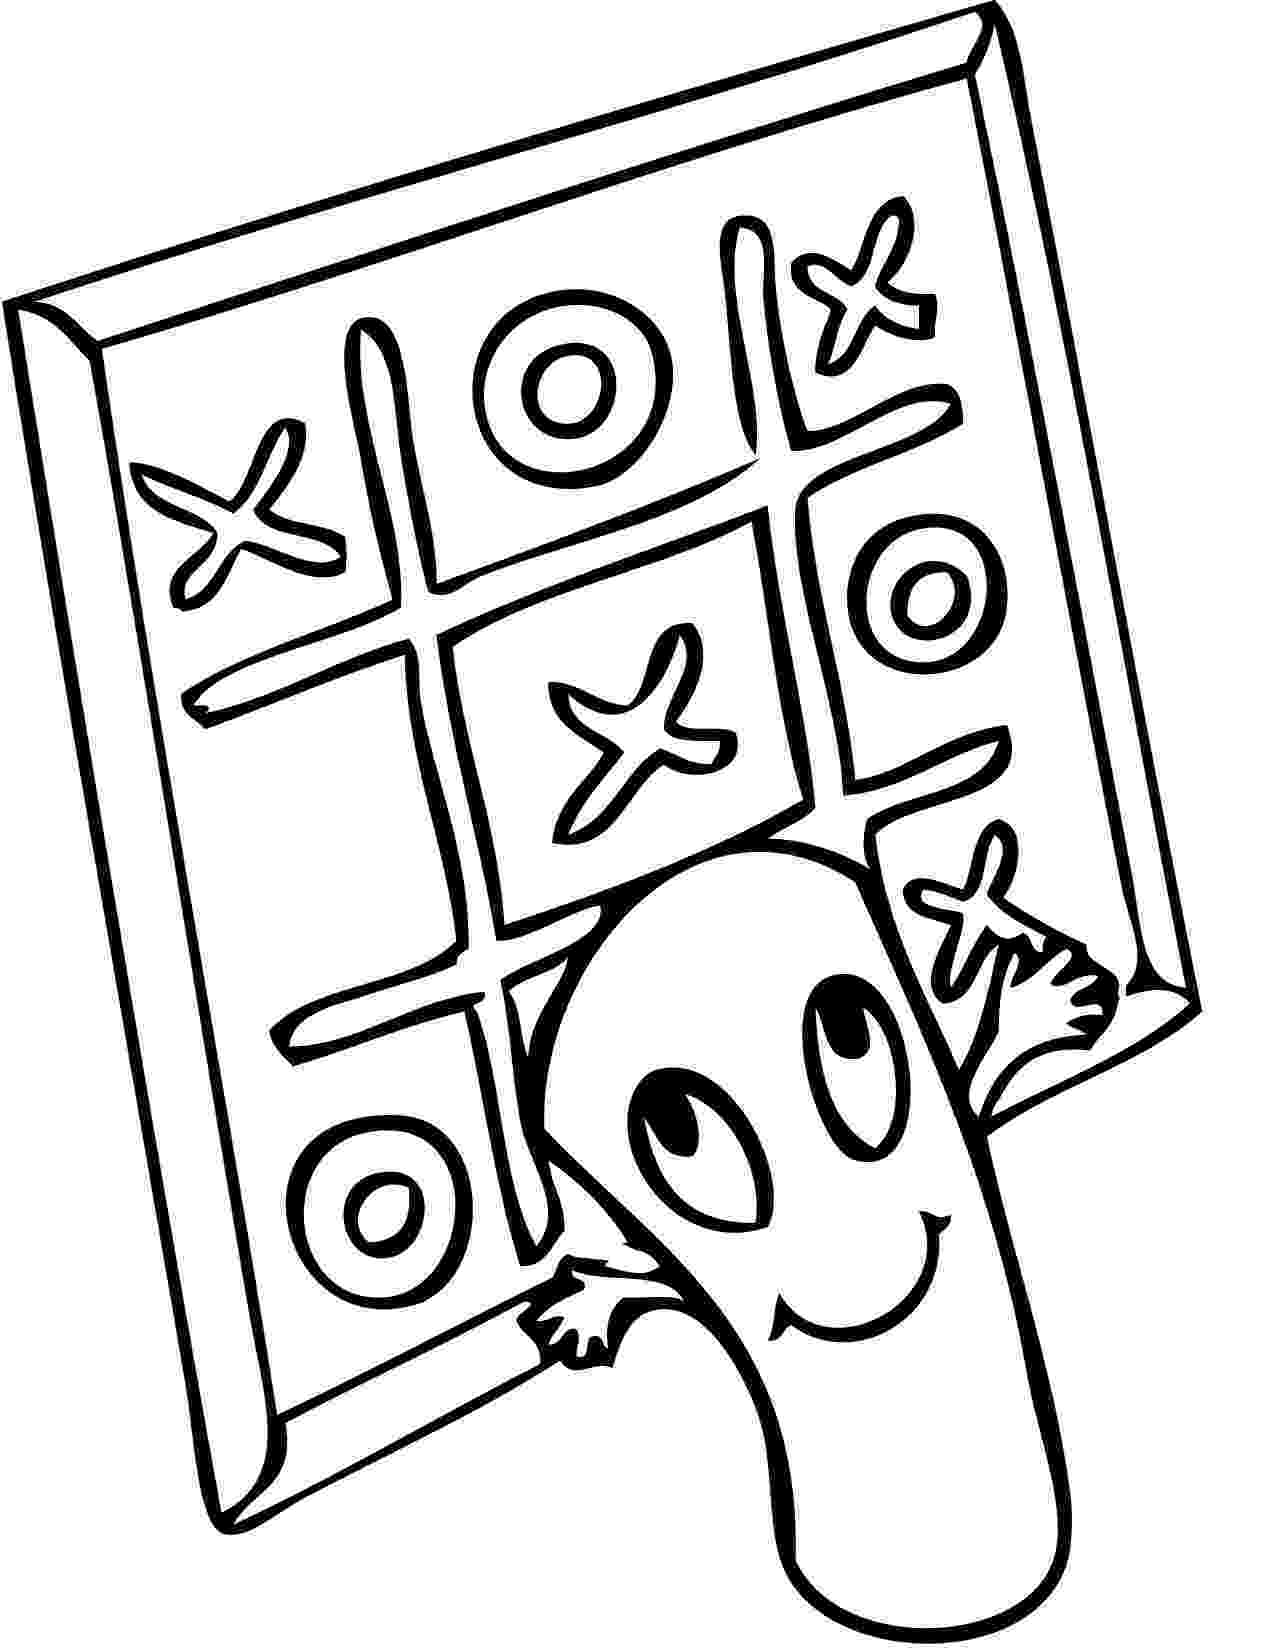 interactive coloring pages fun emoji activity interactive coloring pages writing interactive coloring pages